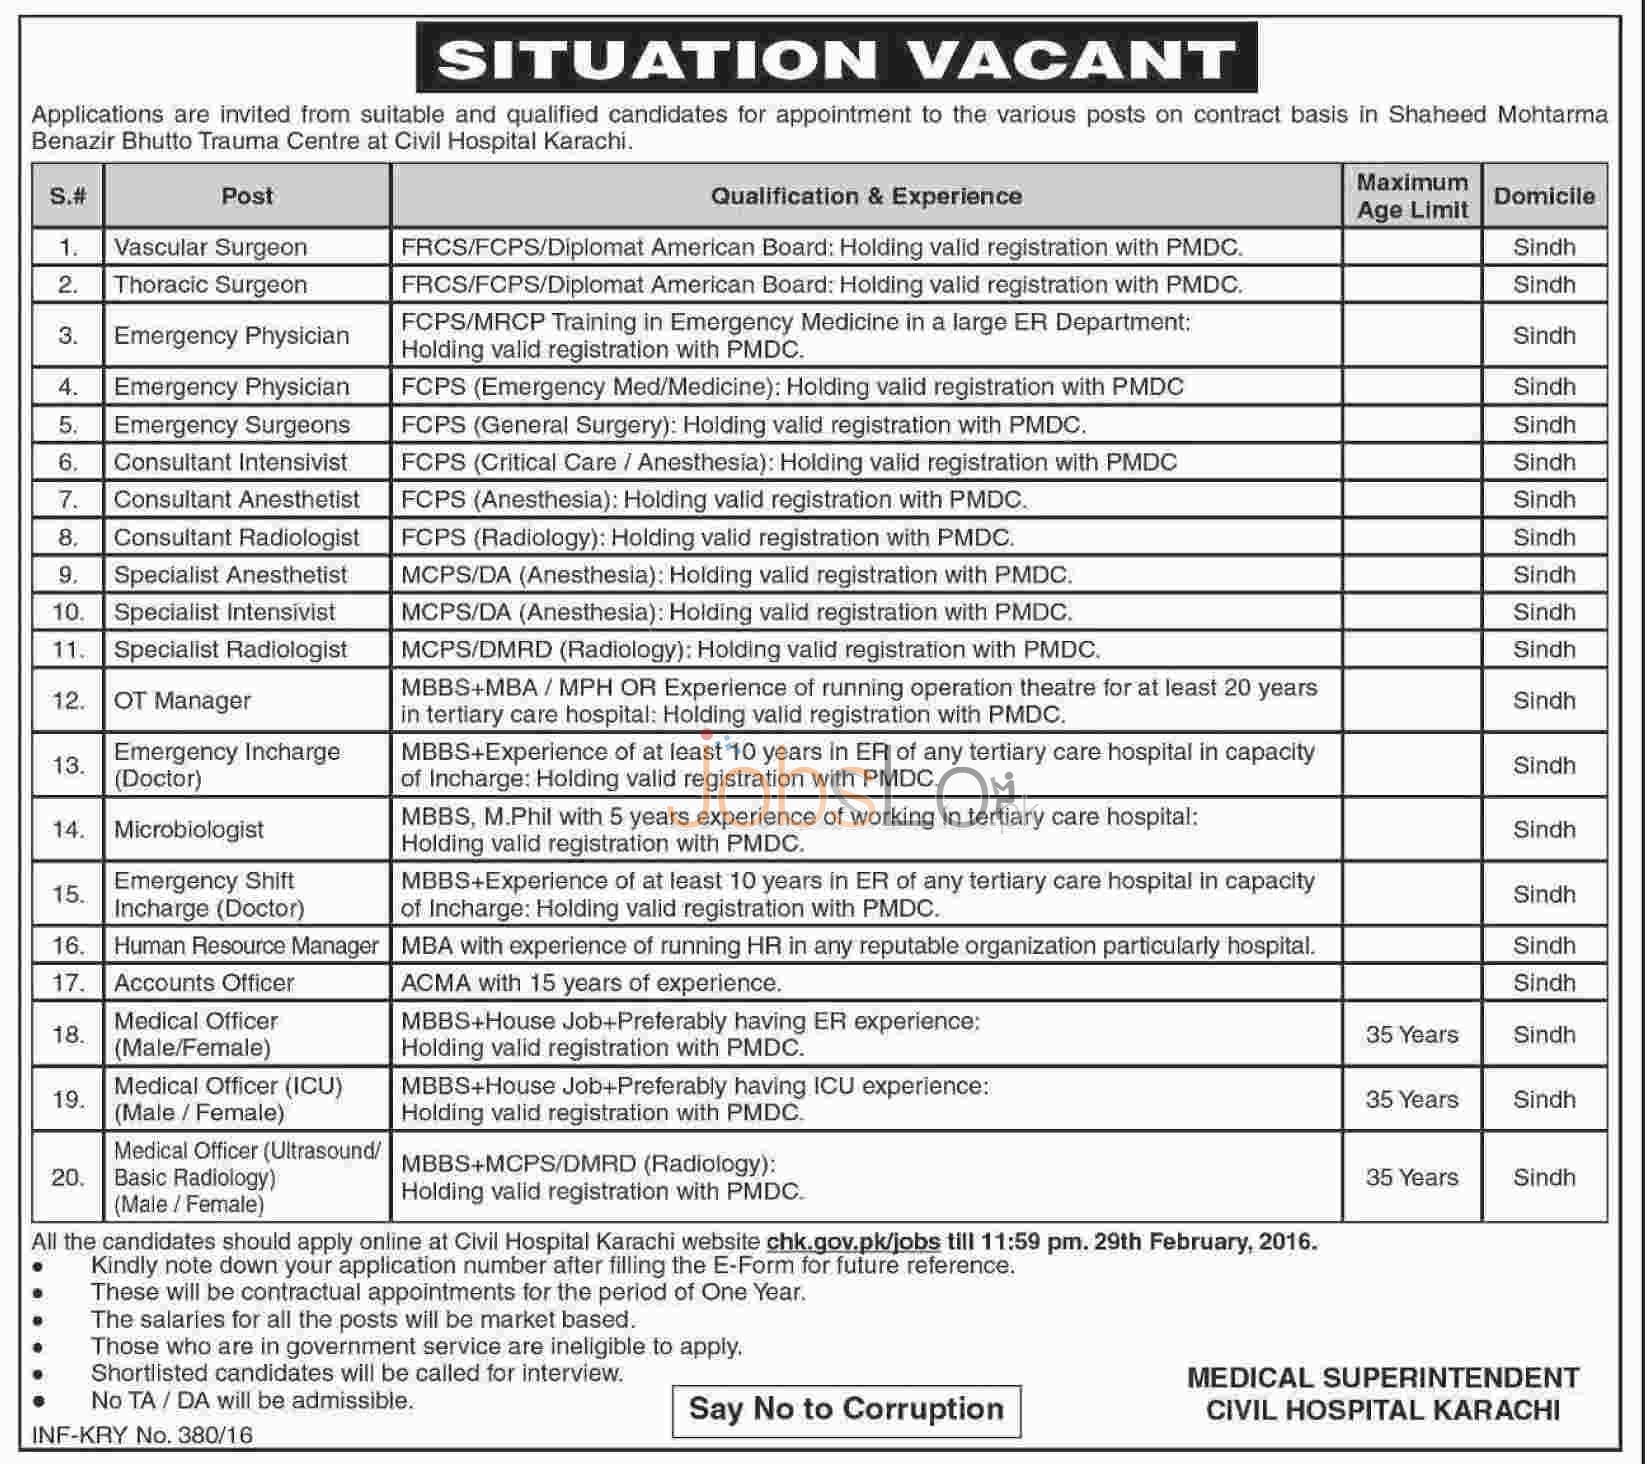 Situations Vacant in Civil Hospital Karachi 2016 in S.Mohtarma Benazir Bhutto Trauma Centre chk.gov.pk/jobs